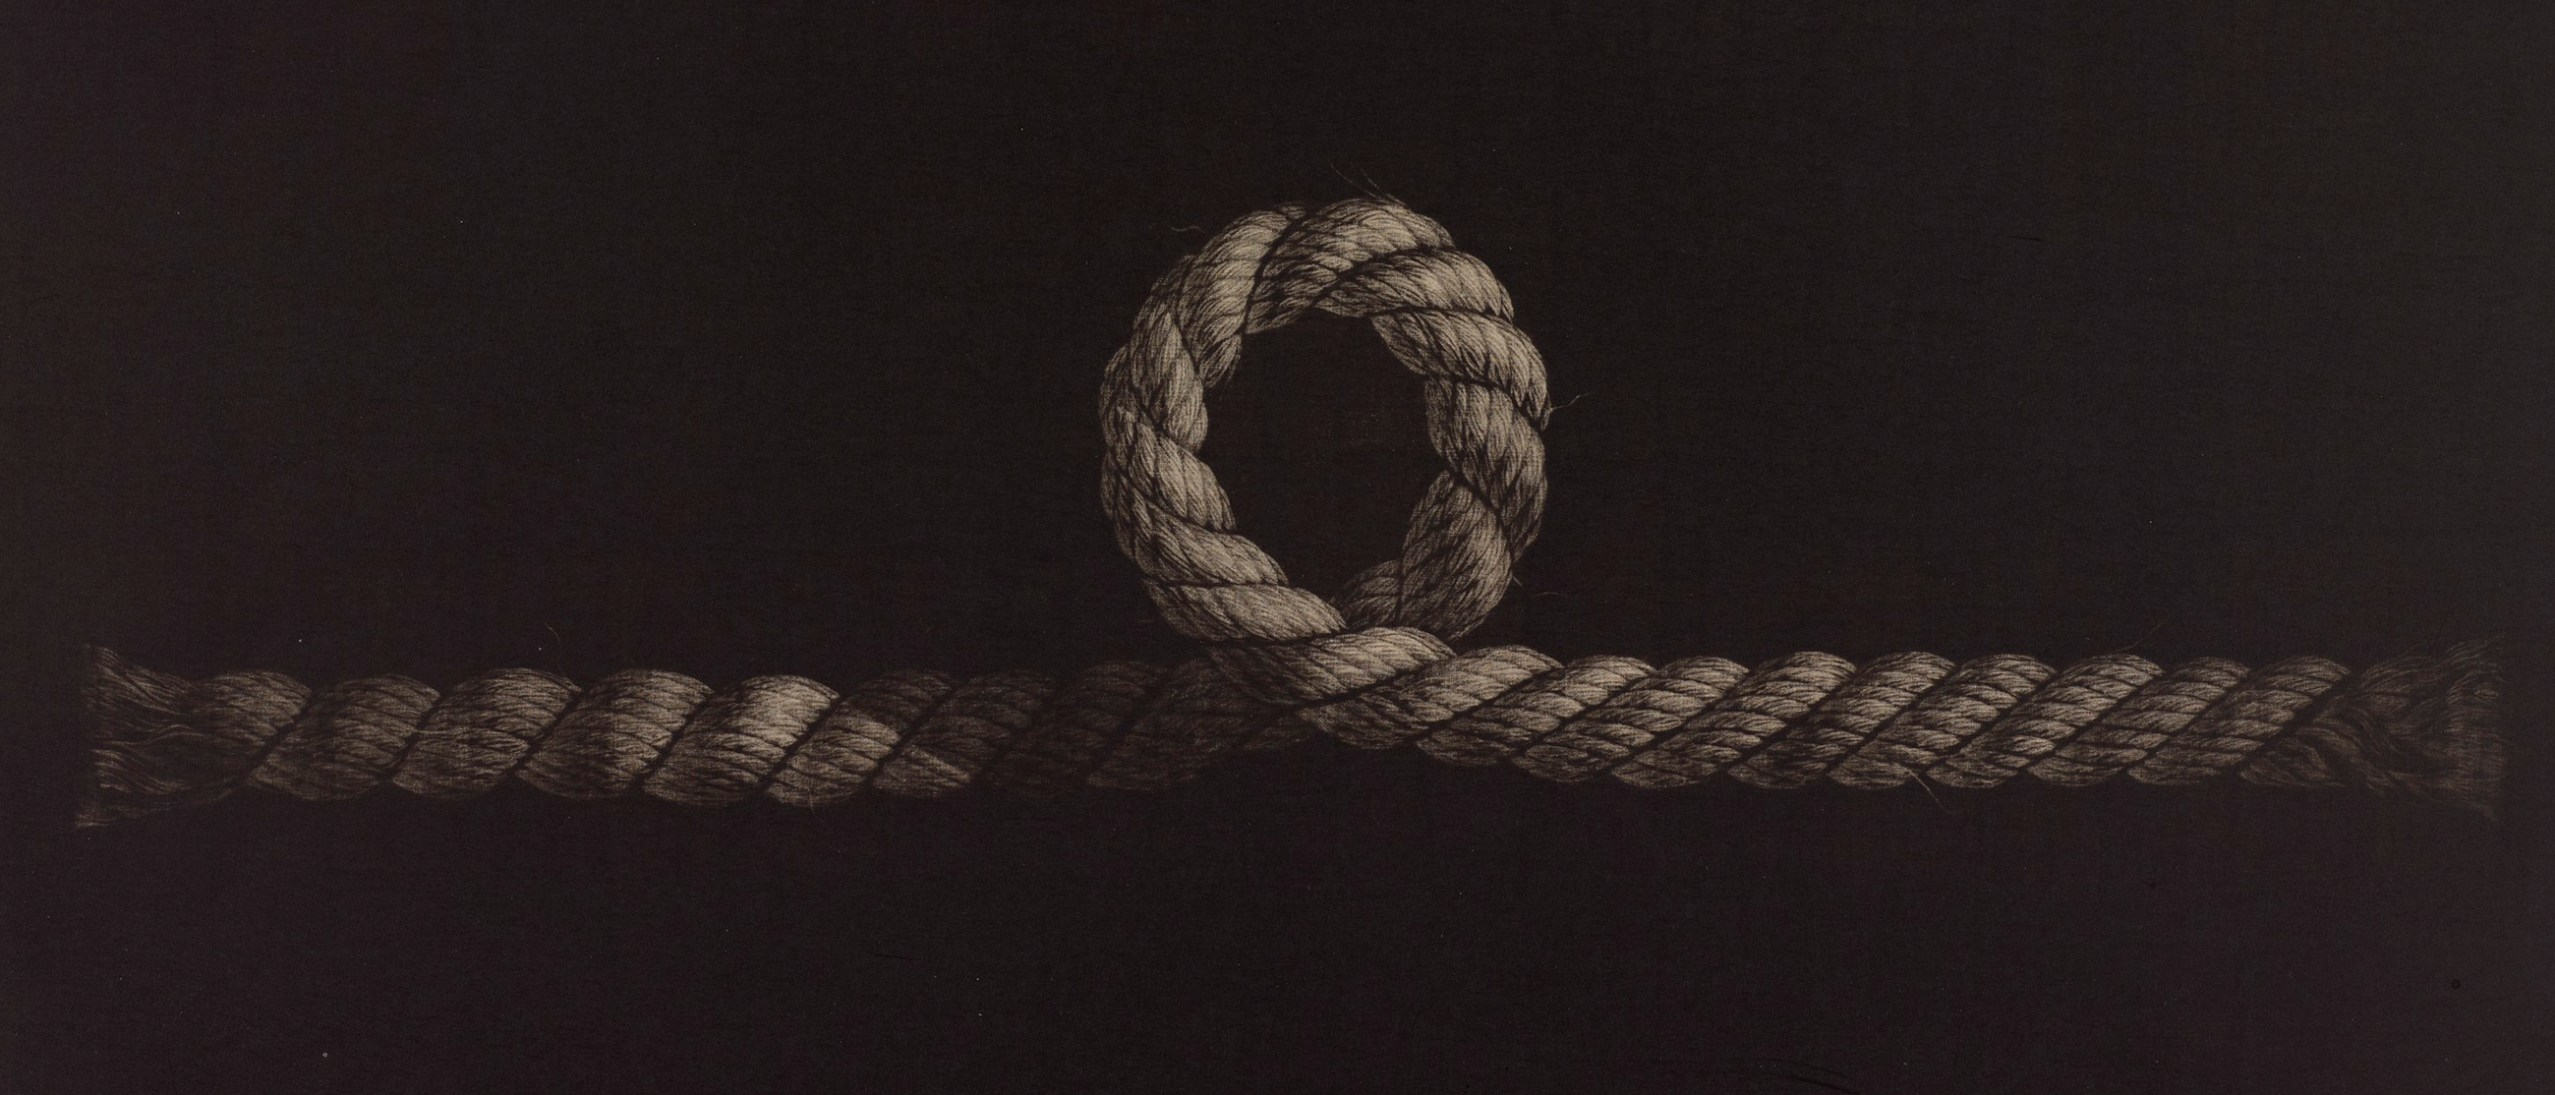 Detail image, Connection—Variation No. 4; Hamanishi Katsunori (b. 1949); Japan, 1980; Mezzotint; LTS2012.1.39